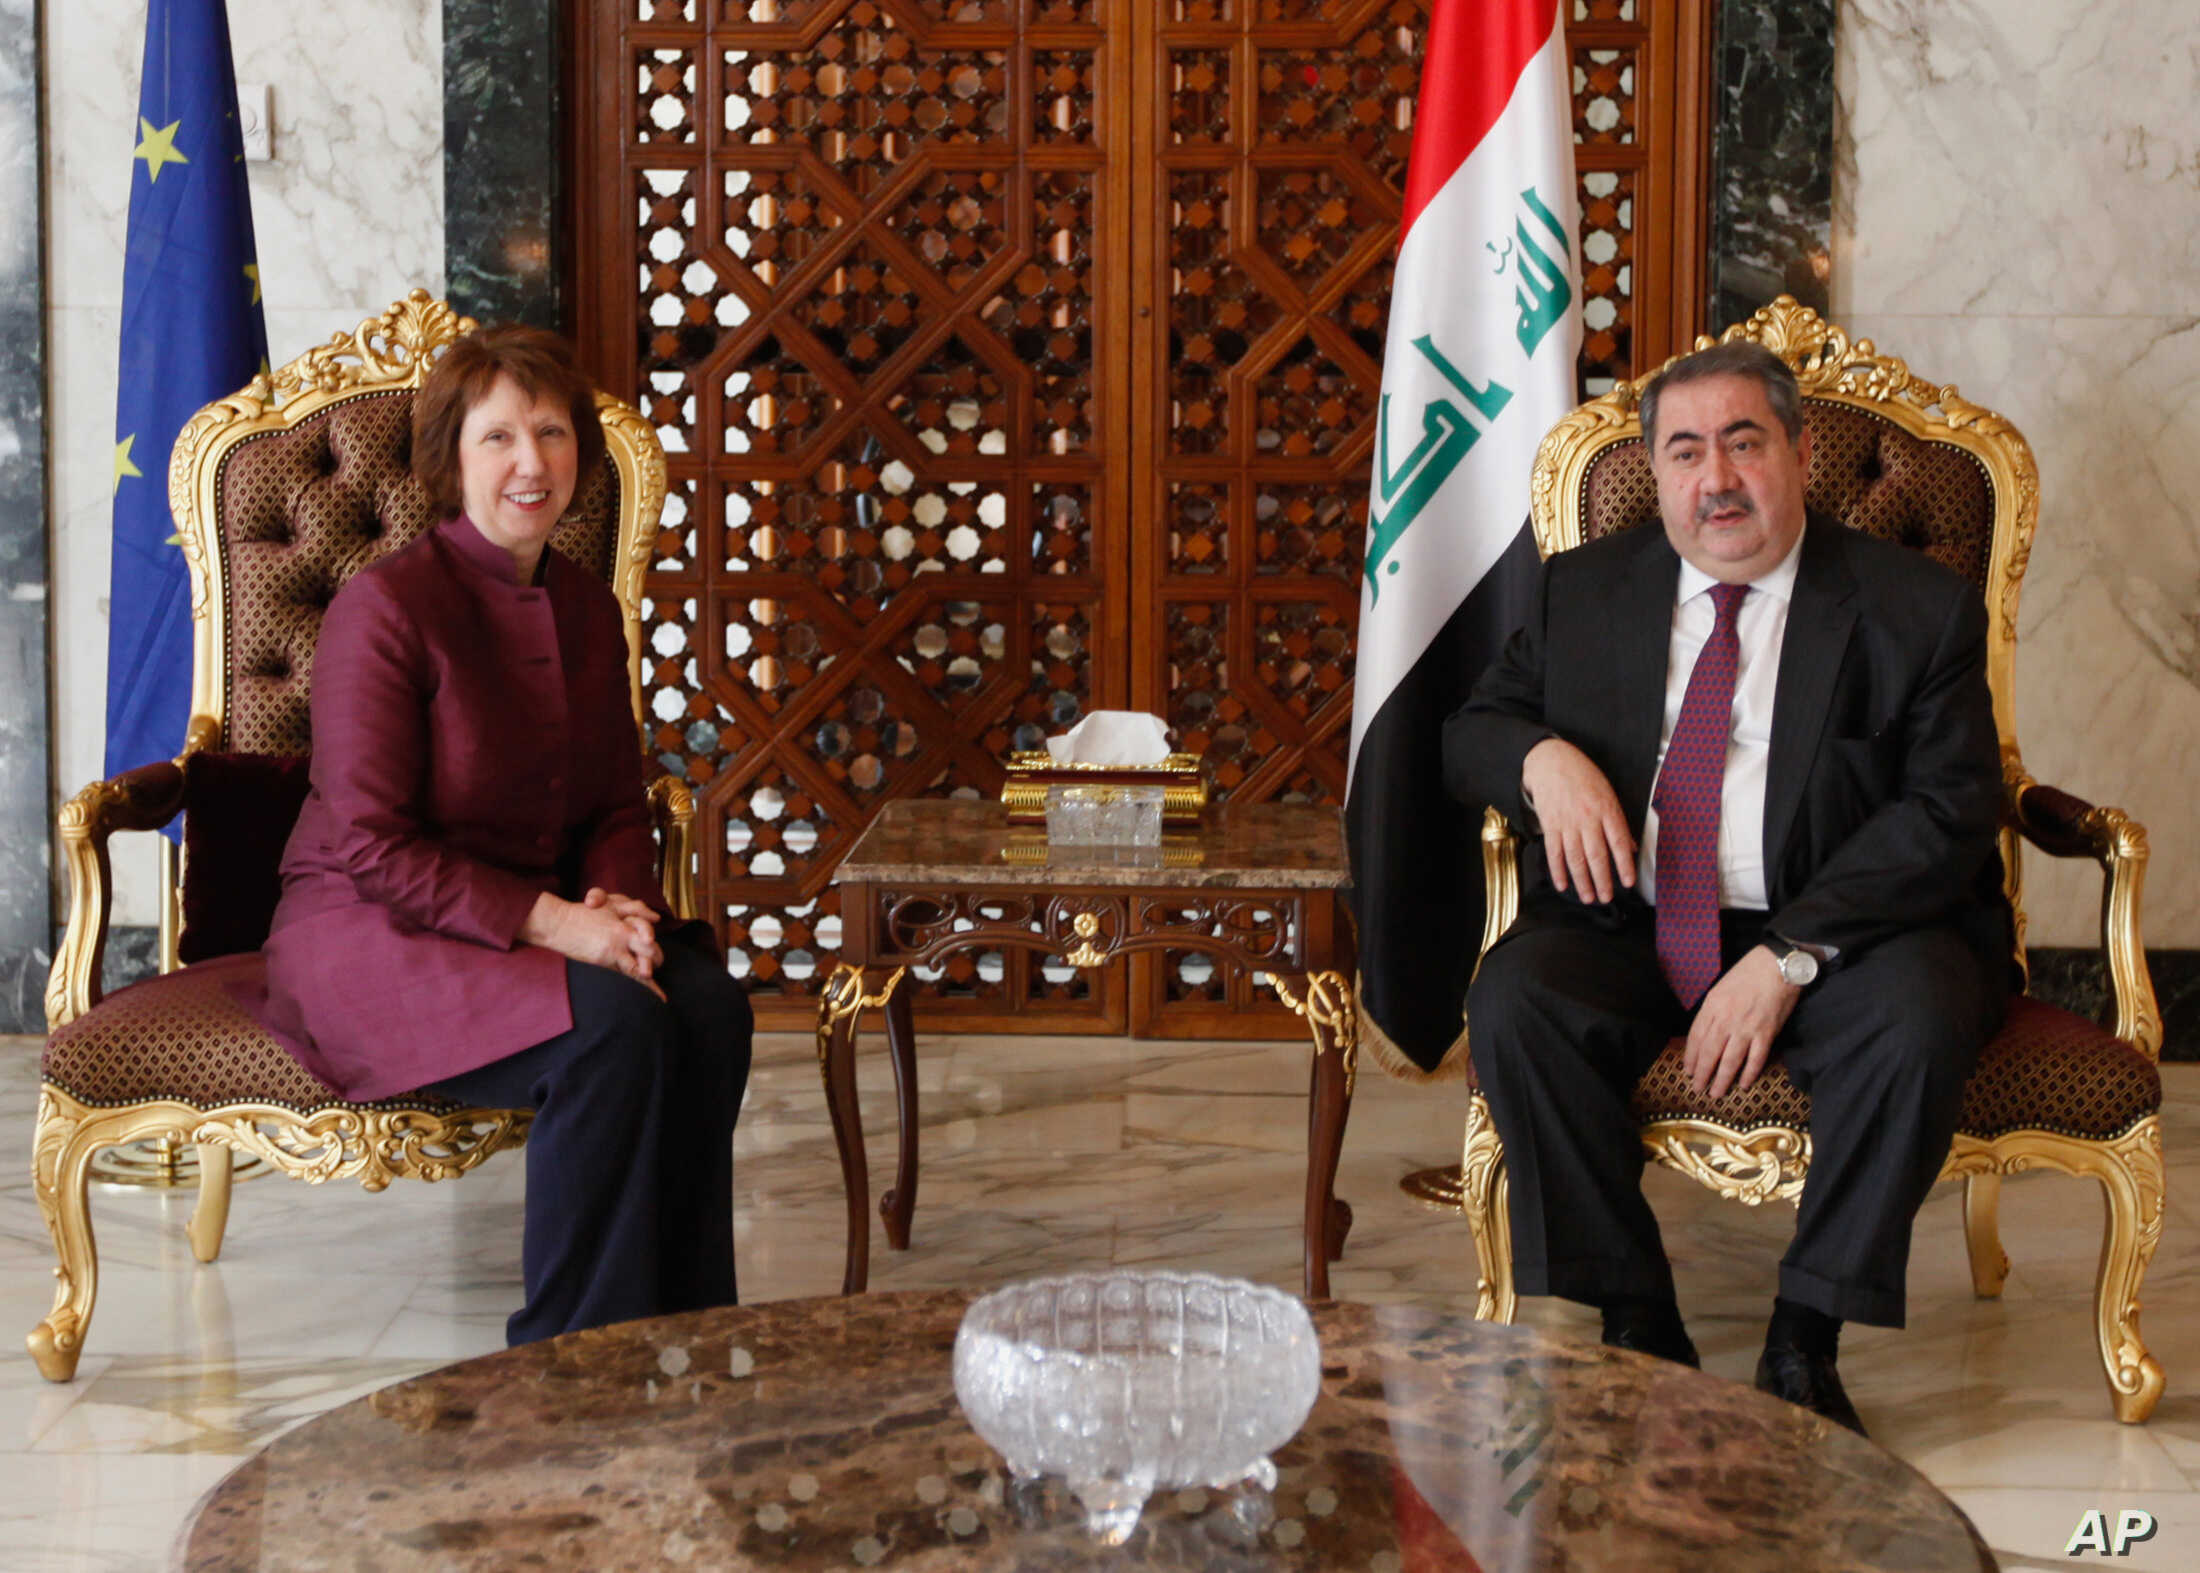 Iraq's Foreign Minister Hoshyar Zebari, right, meets with EU foreign policy chief Catherine Ashton upon her arrival at Baghdad International Airport in Iraq, May 23, 2012.